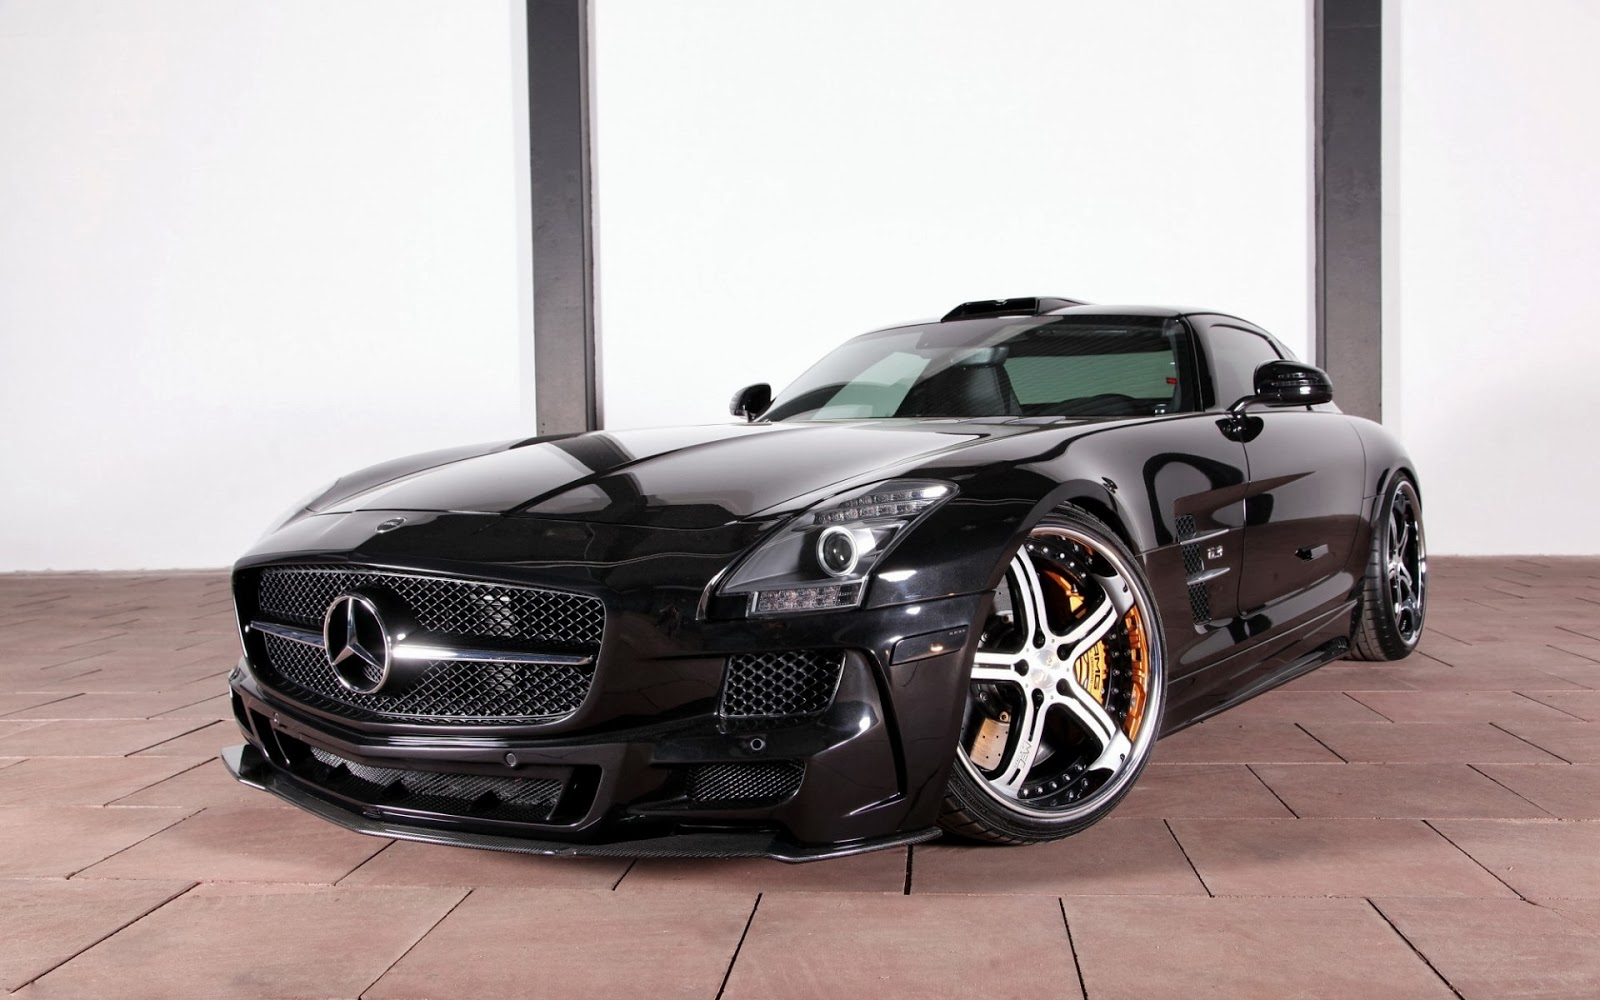 Mercedes Benz hd wallpapers and photos